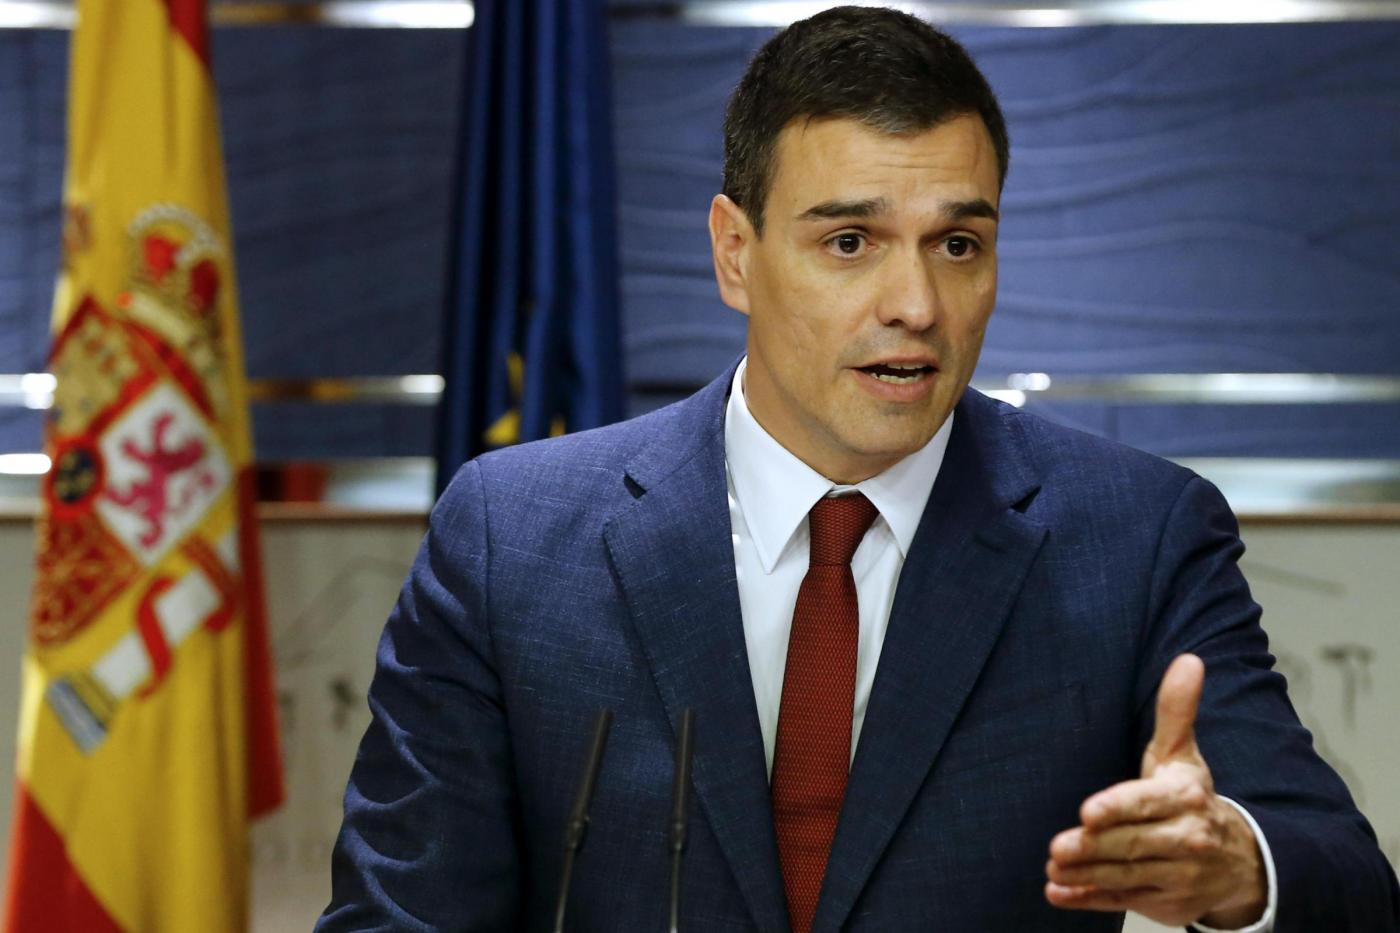 PEDRO SANCHEZ DELIVERS A PRESSER AFTER HIS MEETING WITH THE KING